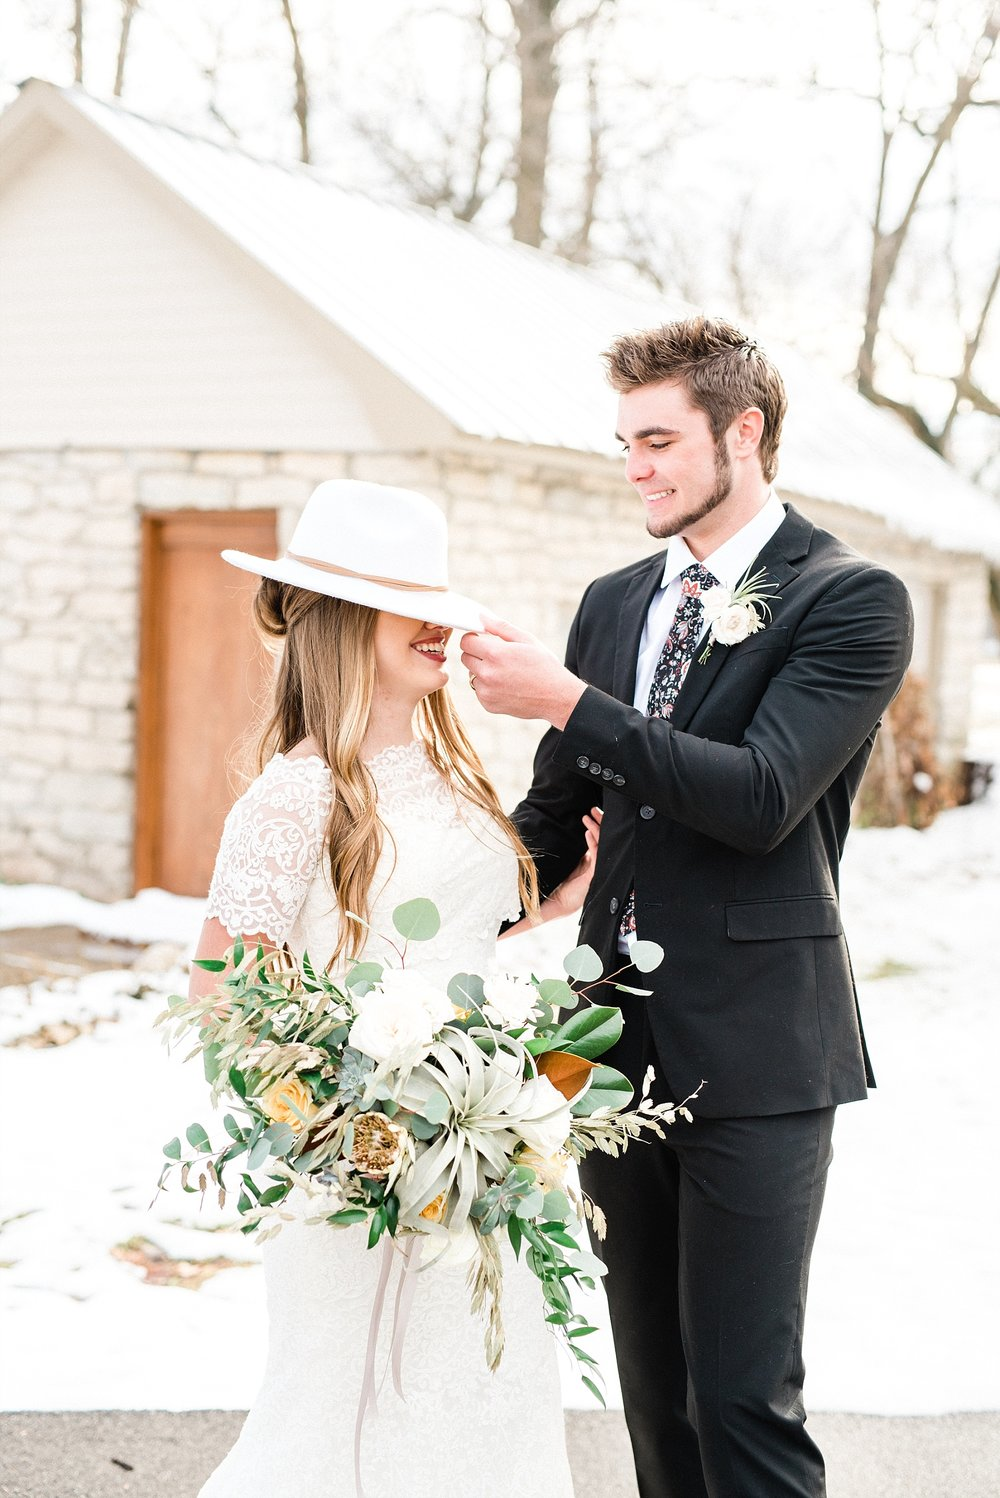 Snowy Winter Wedding at Wildcliff Events Lake With Earthy Jewel Tones and Organic Refined Style by Kelsi Kliethermes Photography Kansas City Missouri Wedding Photographer_0073.jpg